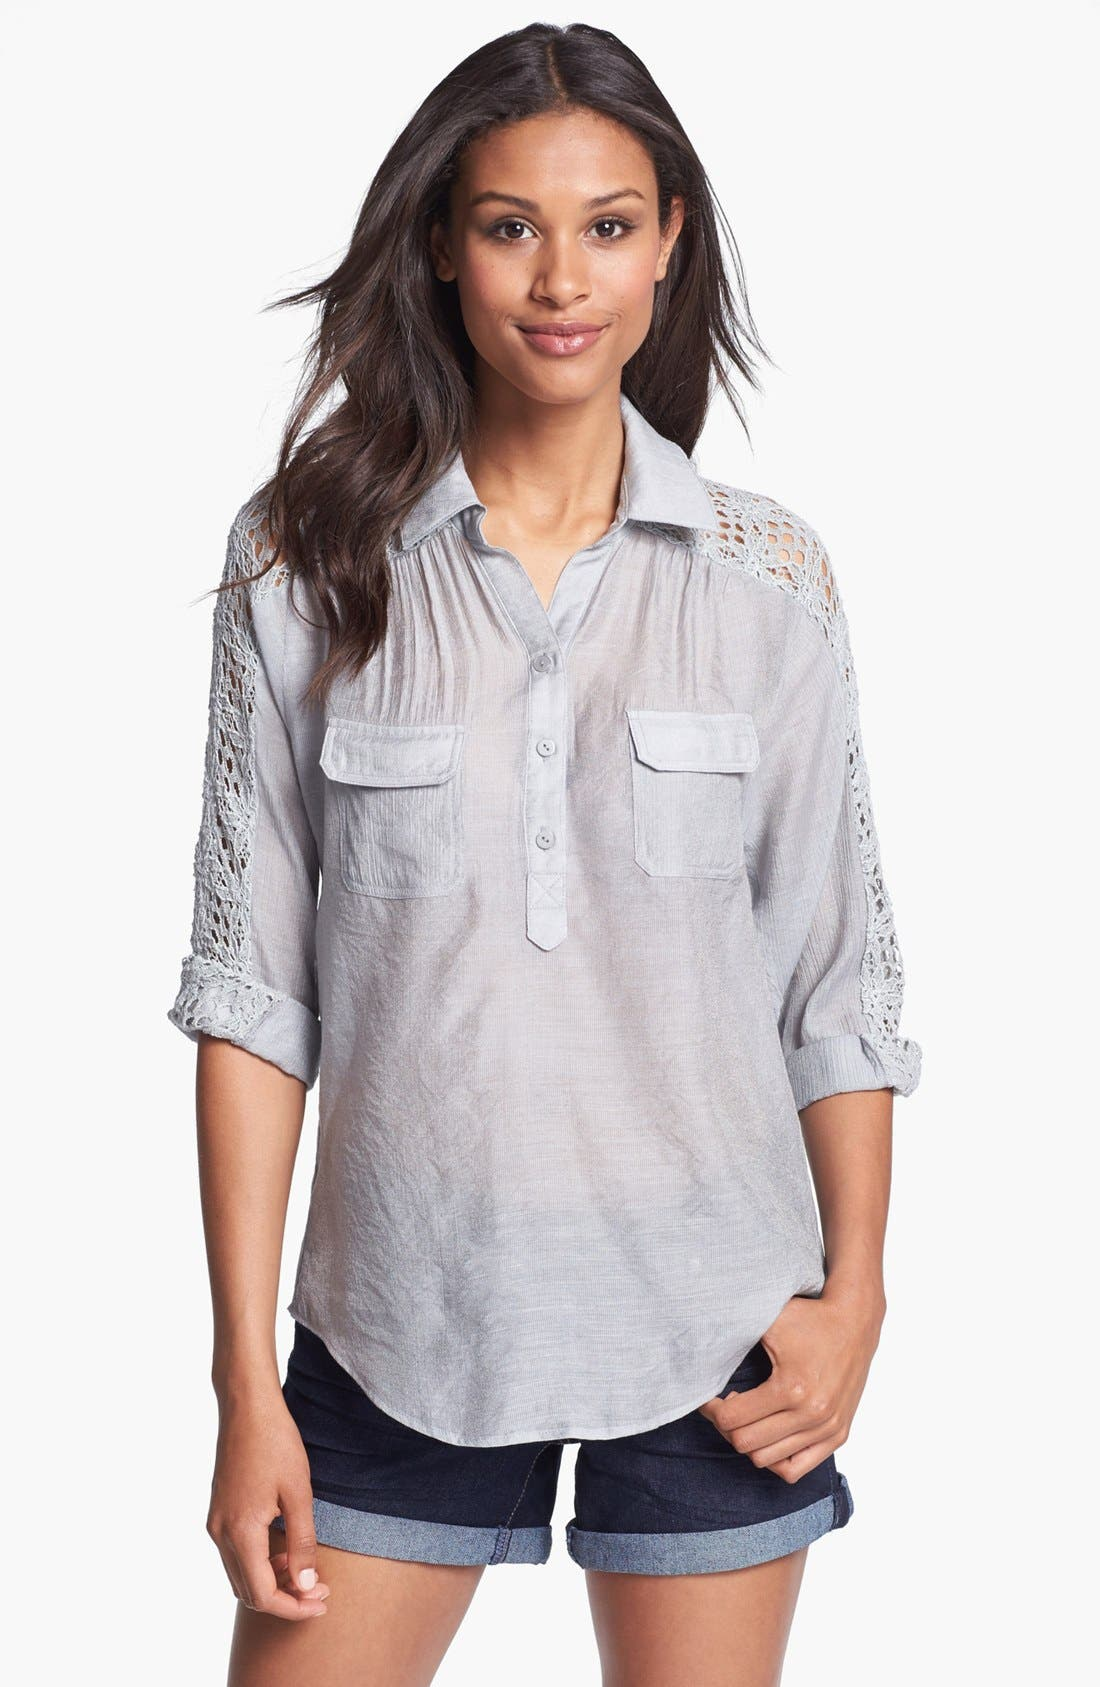 Alternate Image 1 Selected - KUT from the Kloth 'Leana' Lace Trim Shirt